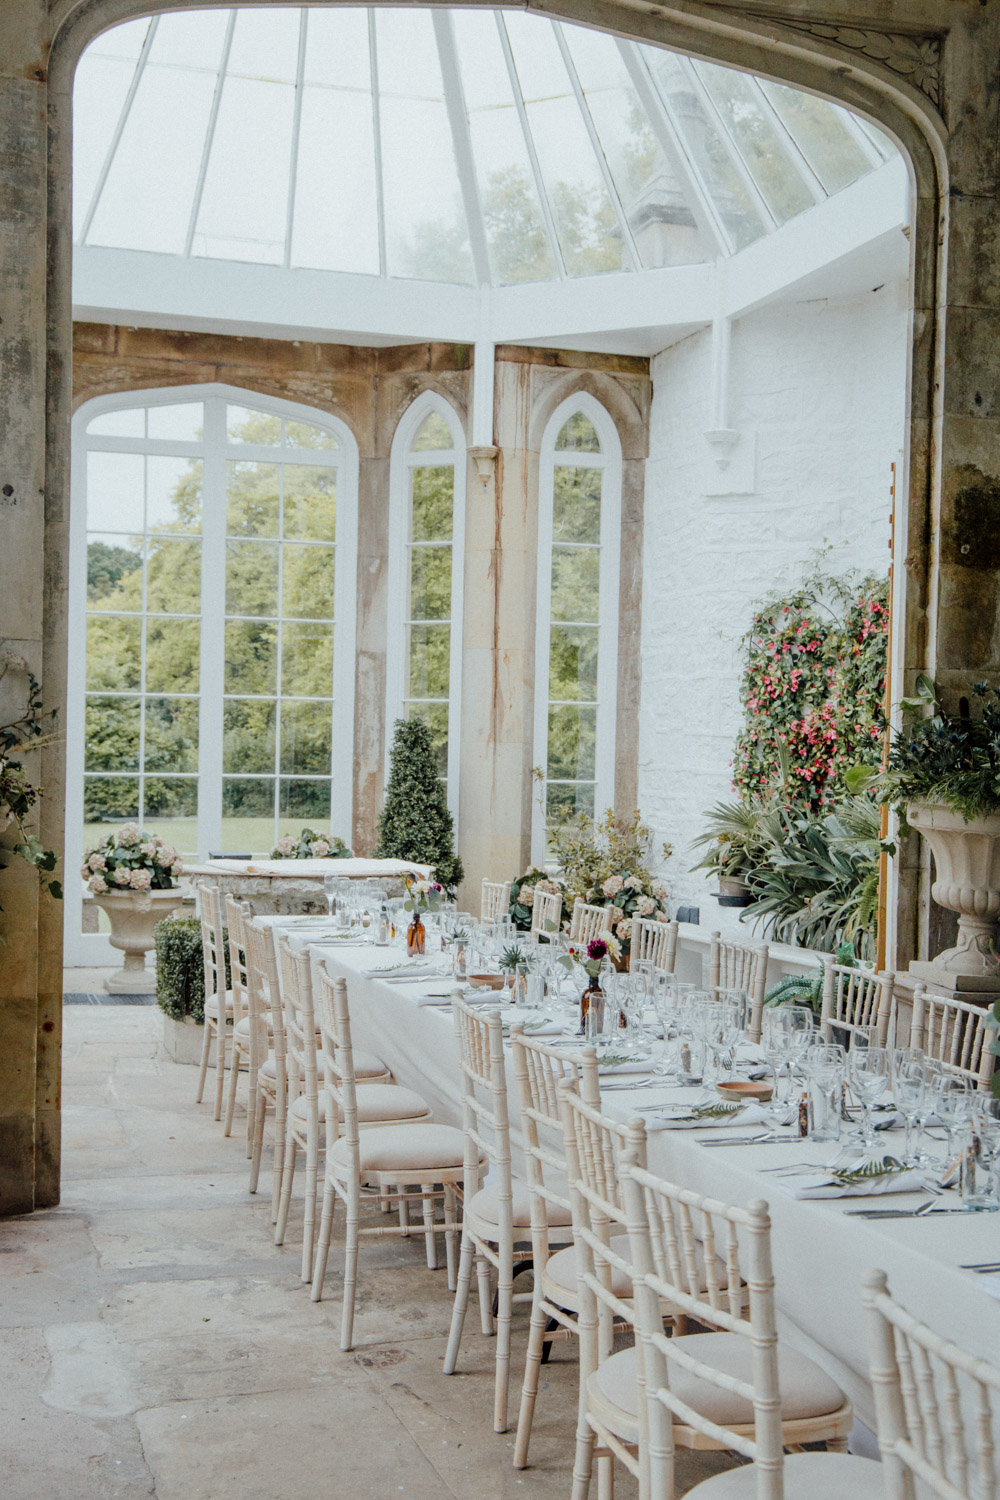 Glass House Wedding Venues In The UK - Rock My Wedding